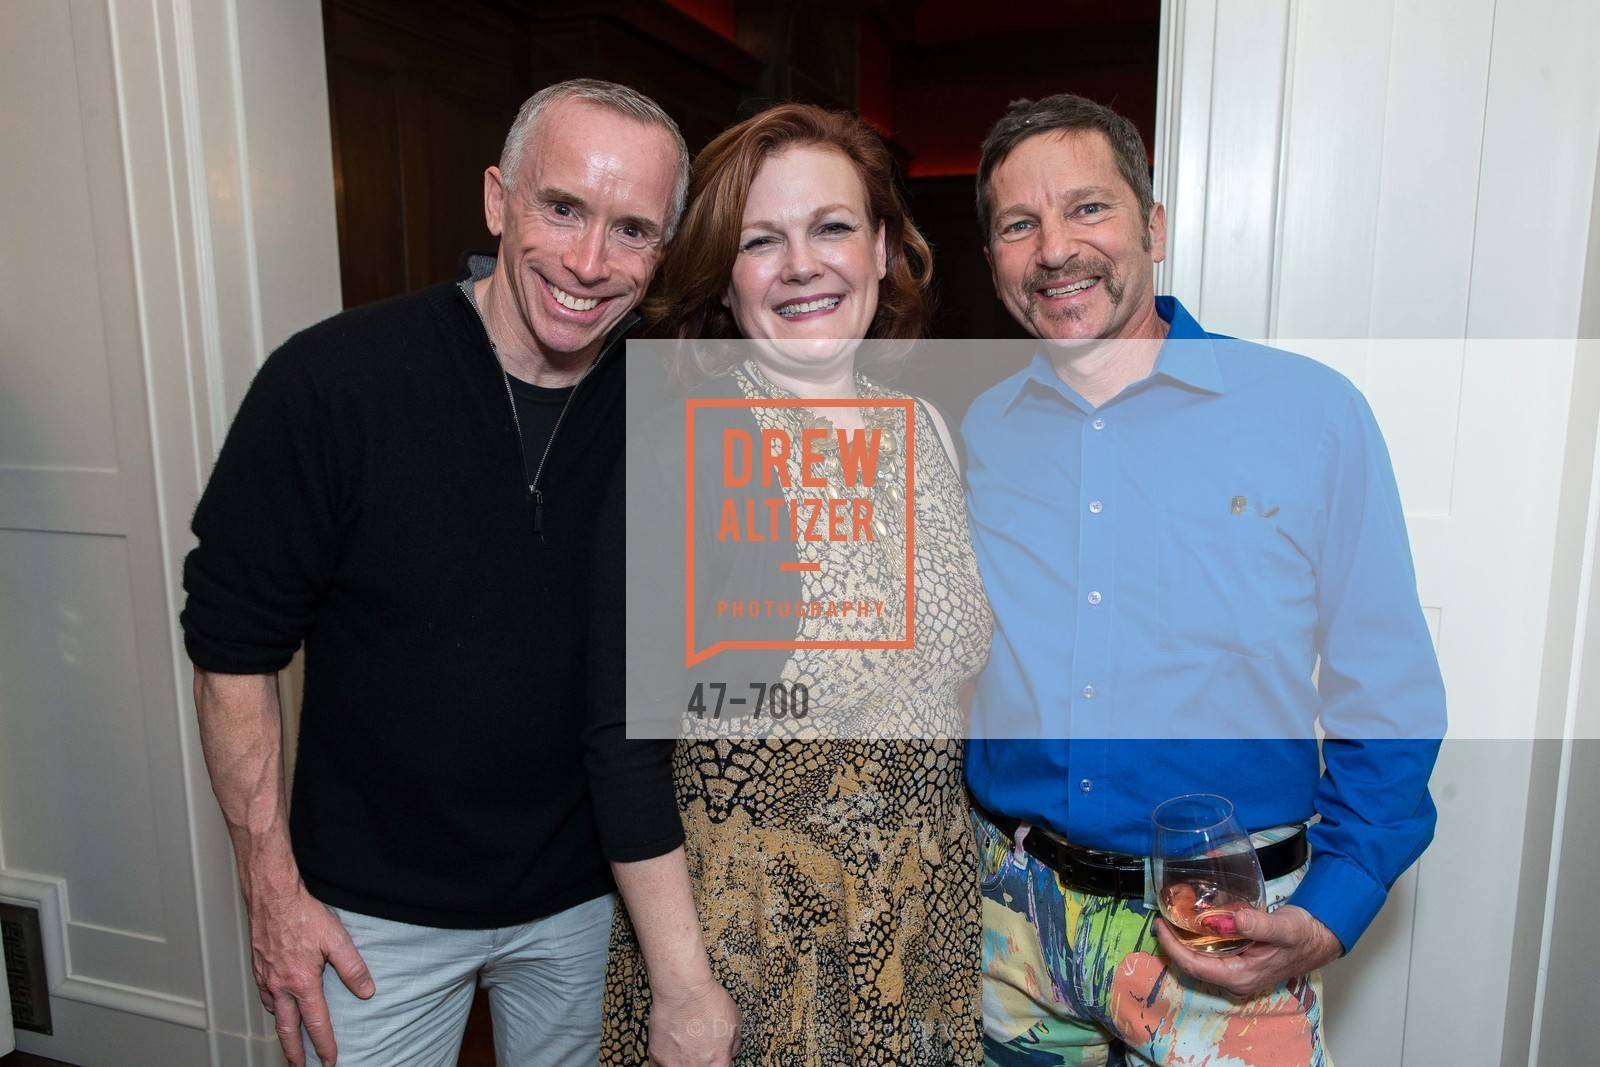 Maurice Kelly, Jennifer Raiser, Eric Jansen, SUKEY FORBES' Book Signing, US, May 6th, 2015,Drew Altizer, Drew Altizer Photography, full-service agency, private events, San Francisco photographer, photographer california